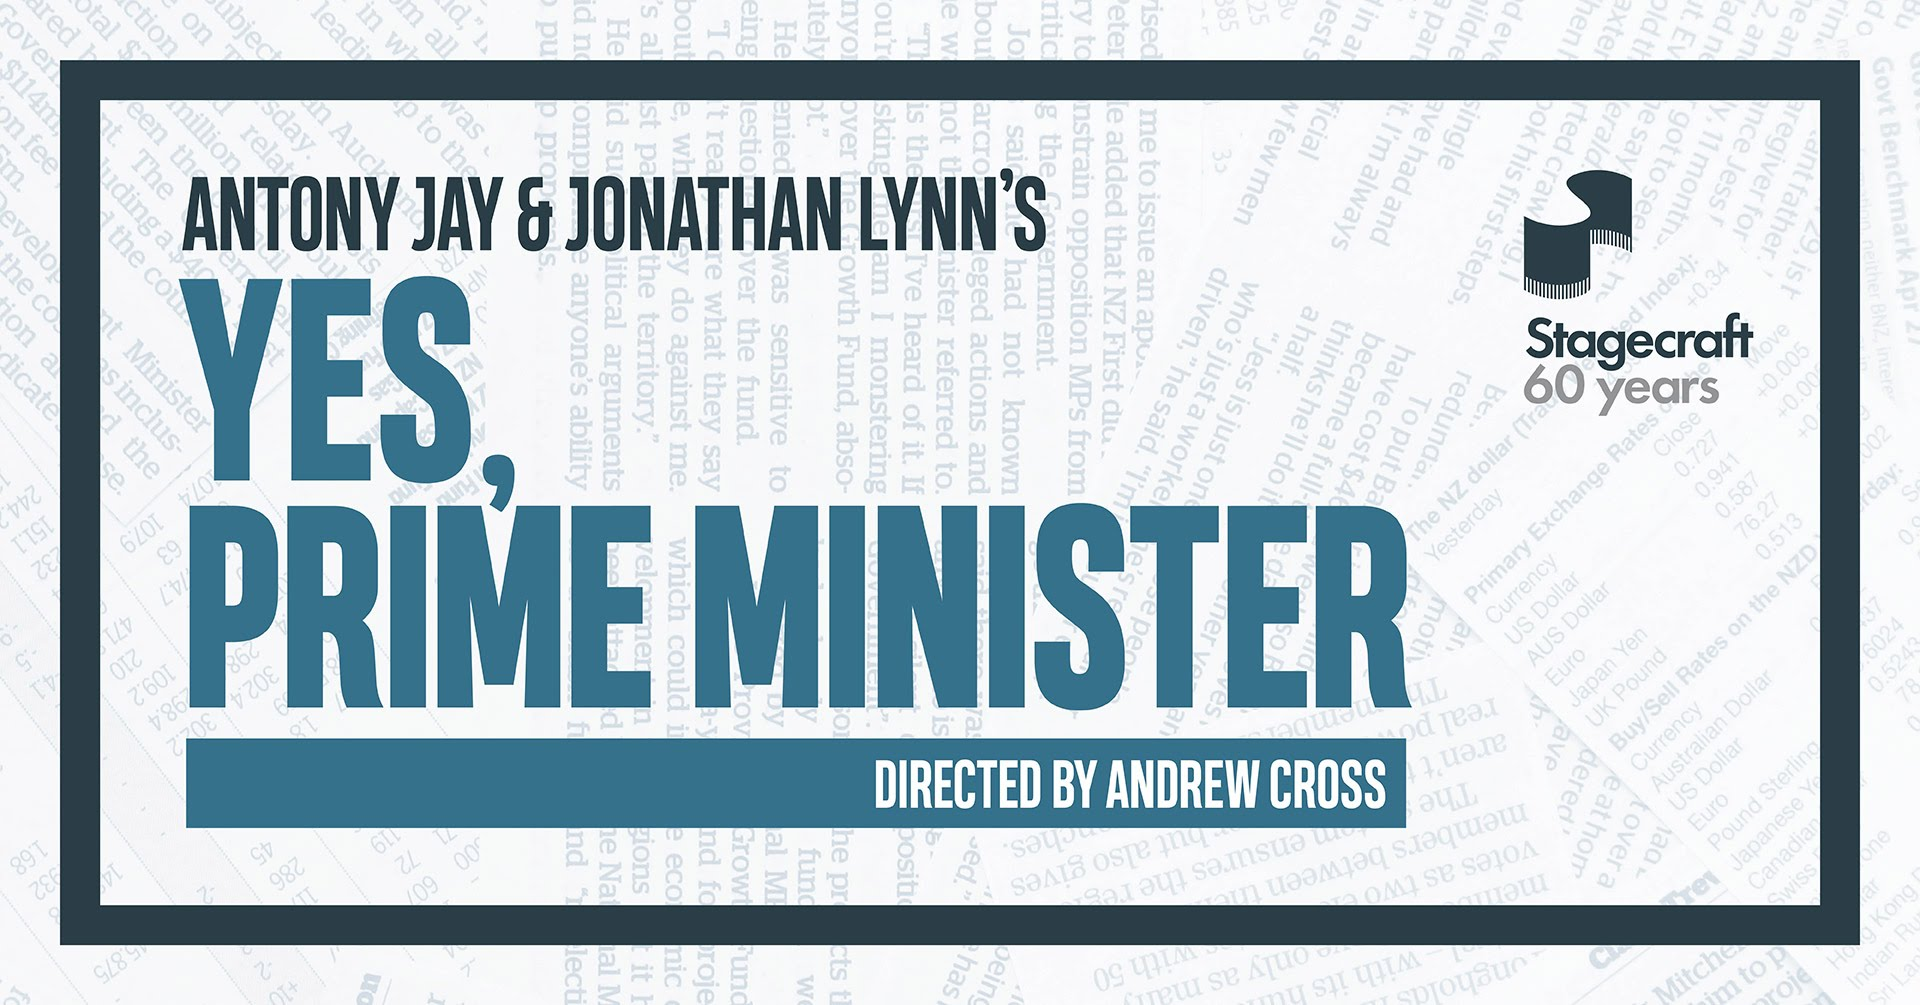 https://www.iticket.co.nz/events/2018/sep/yes-prime-minister?utm_source=stagecraft-website&utm_medium=referral&utm_campaign=yespm